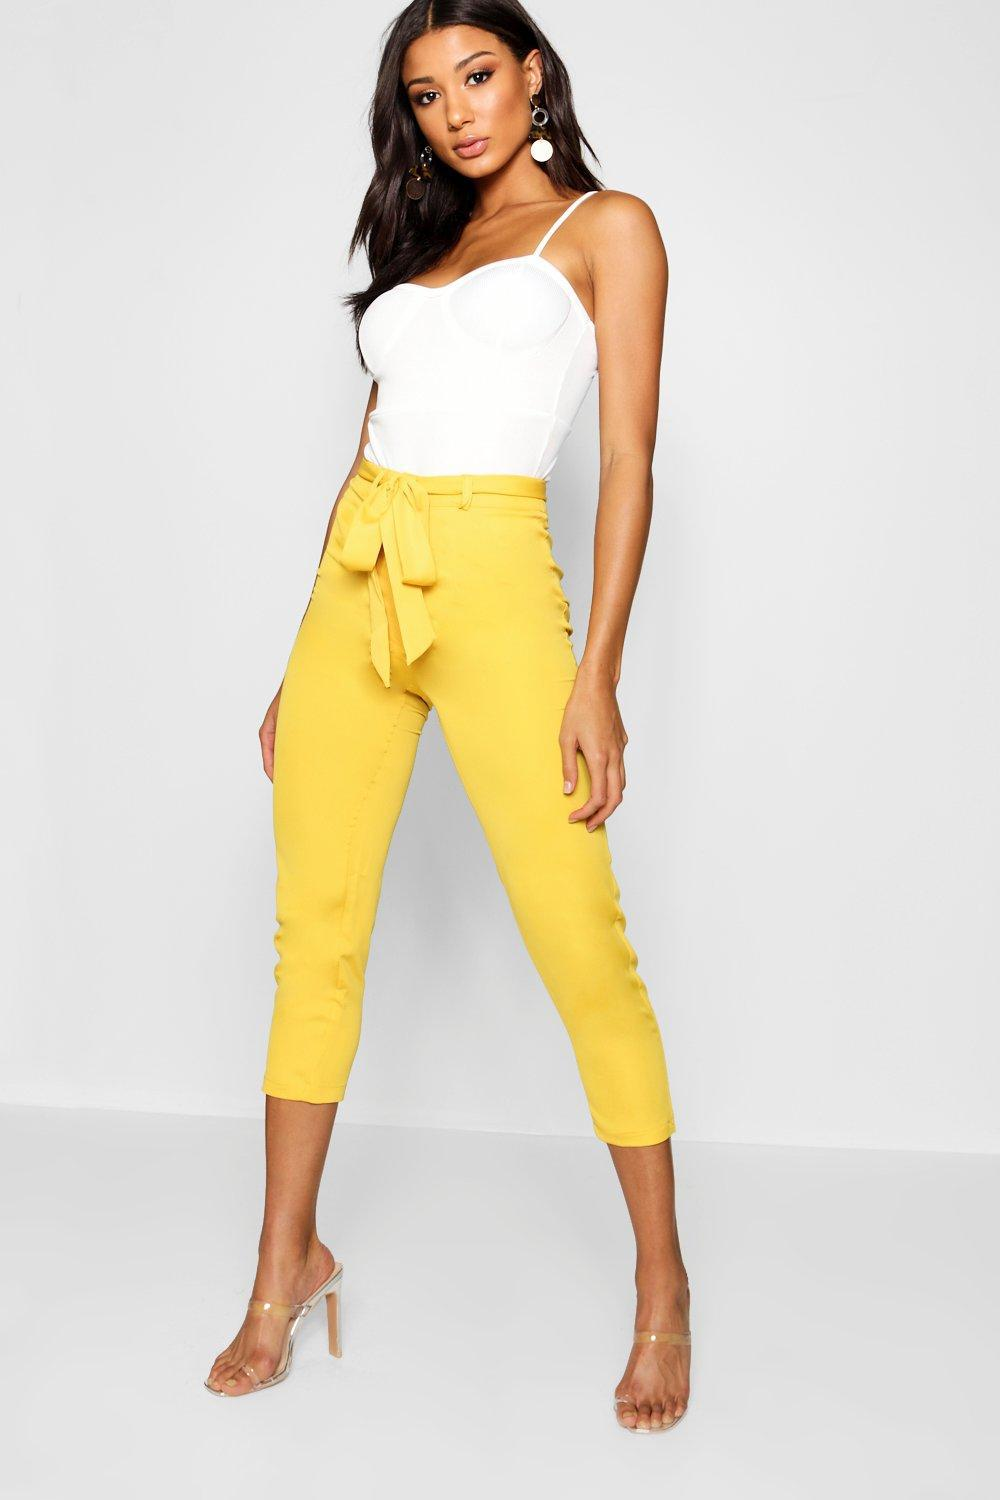 51f6d9b549109 Lyst - Boohoo Cropped Tie Waist Slim Fit Trousers